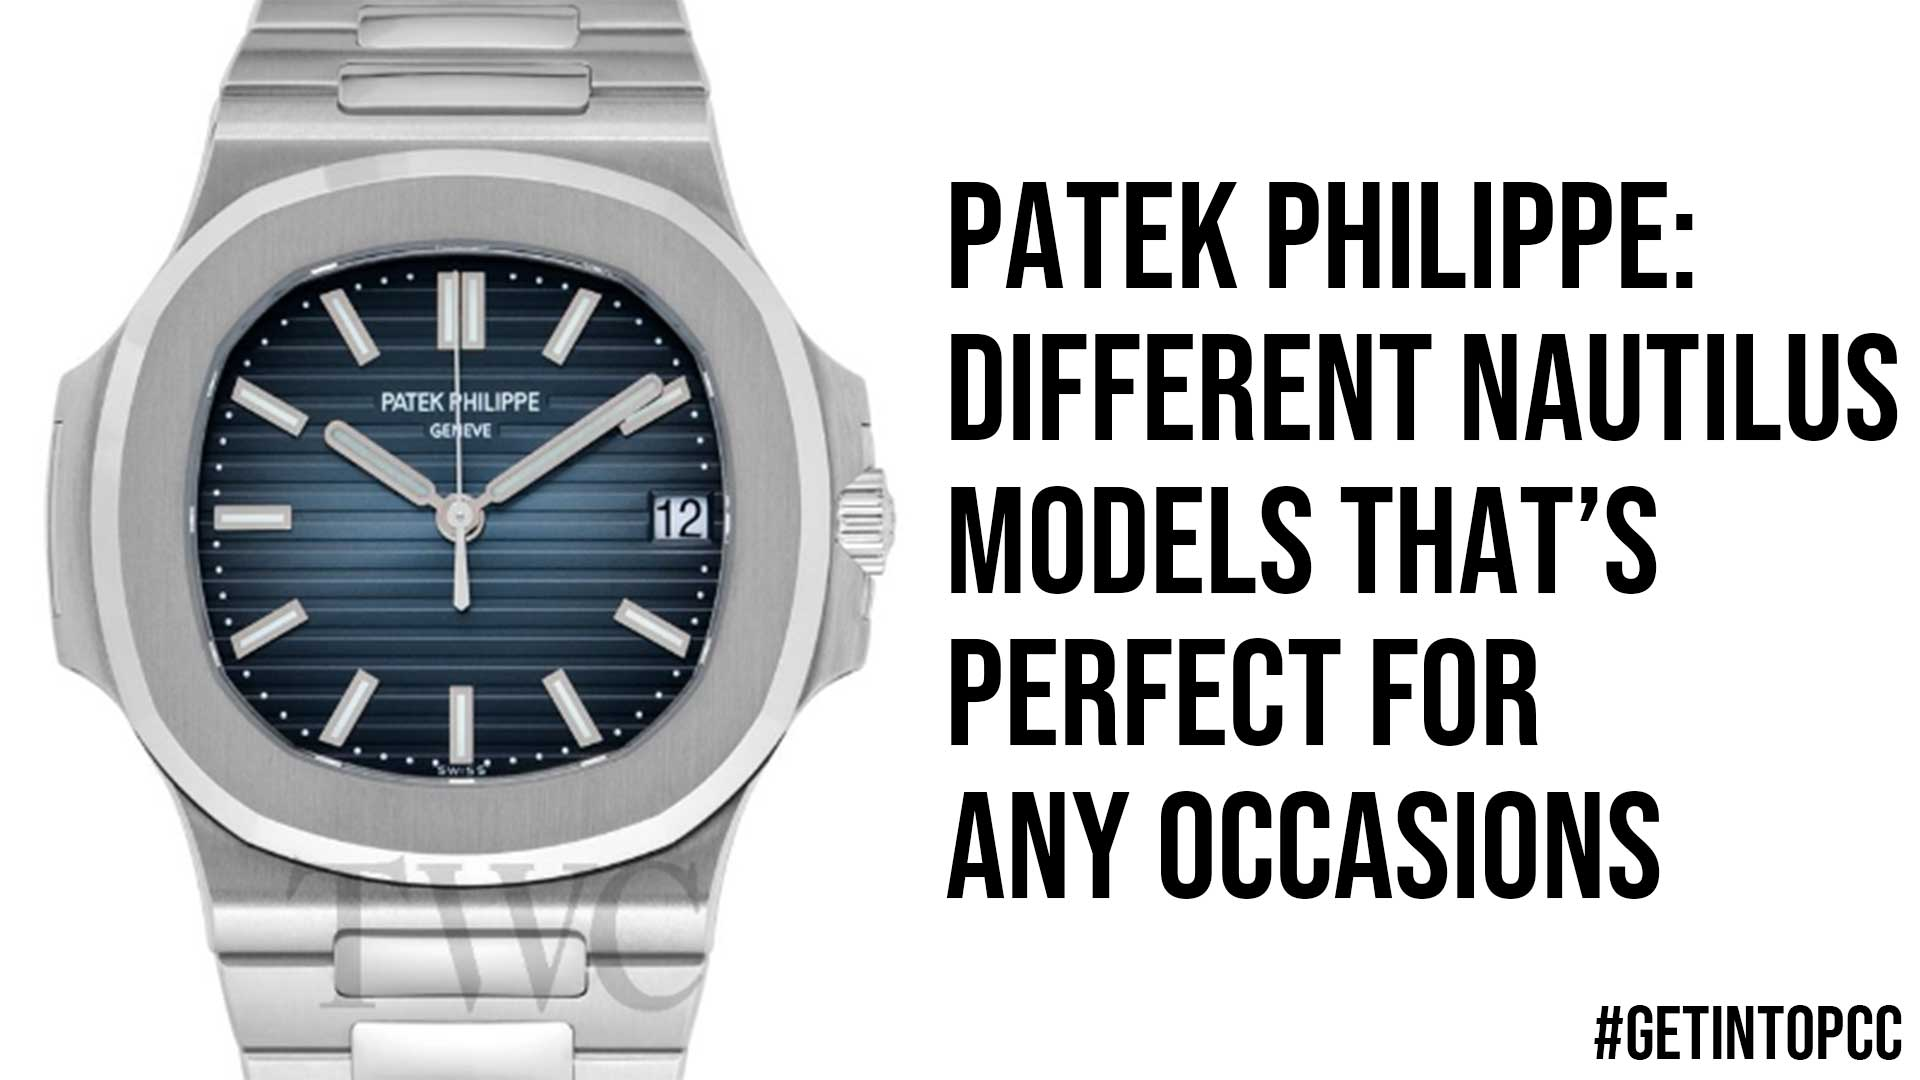 Patek Philippe Different Nautilus Models Thats Perfect For Any Occasions